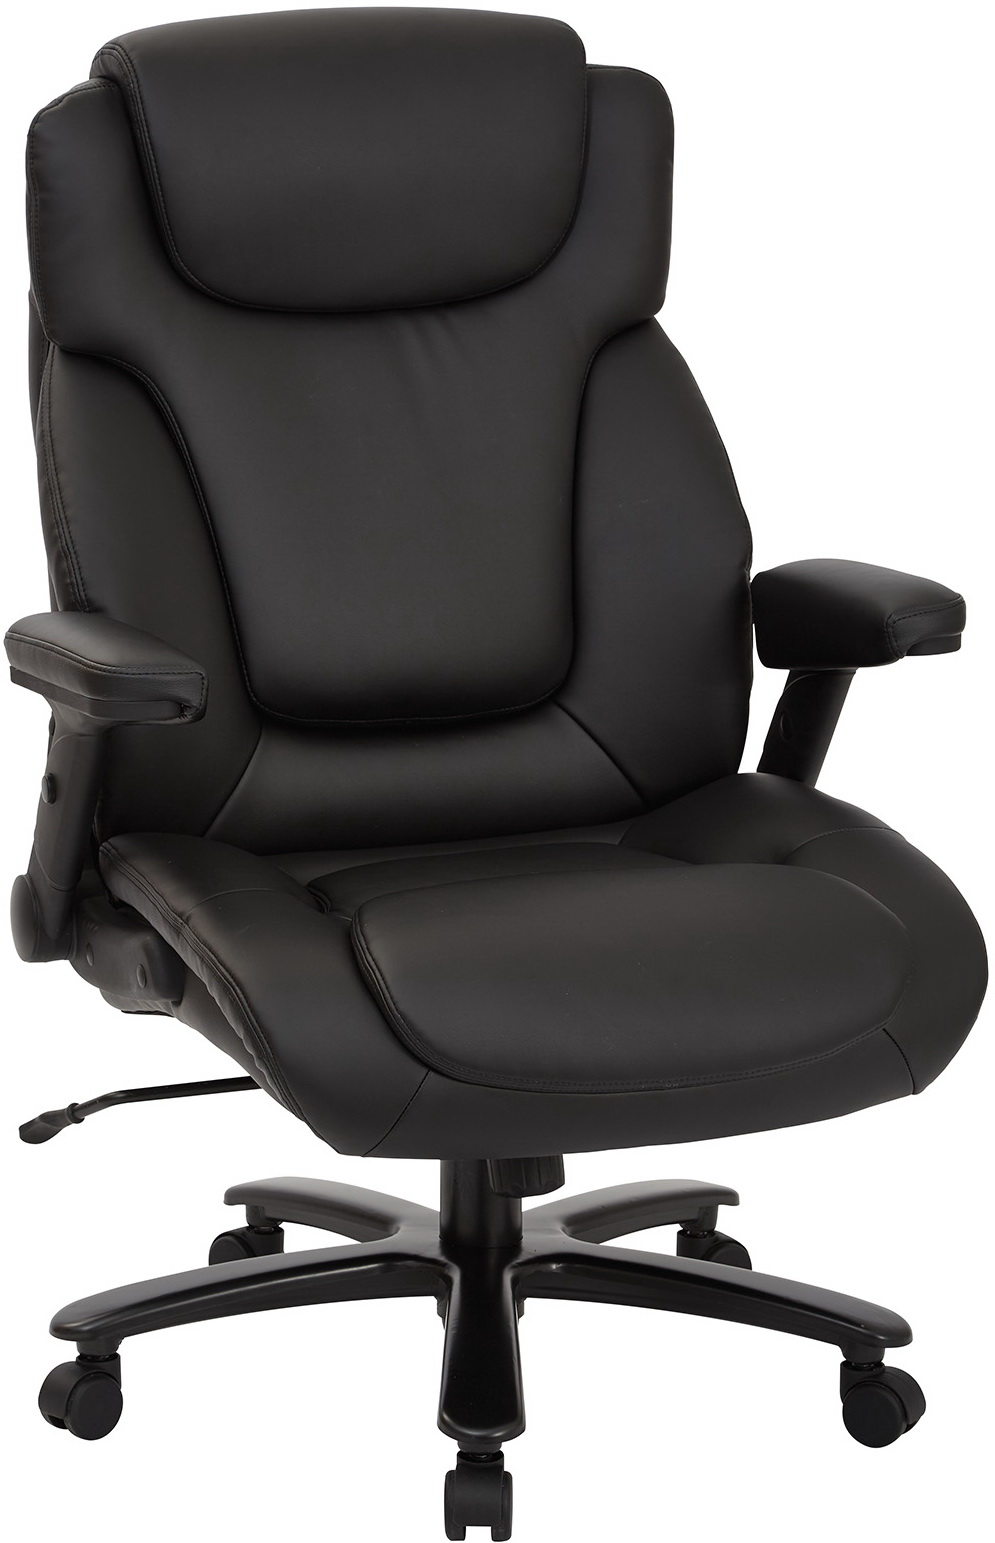 Enjoyable Pro Line Ii High Back Bonded Leather Big Tall Executive Chair 39200 Home Interior And Landscaping Palasignezvosmurscom